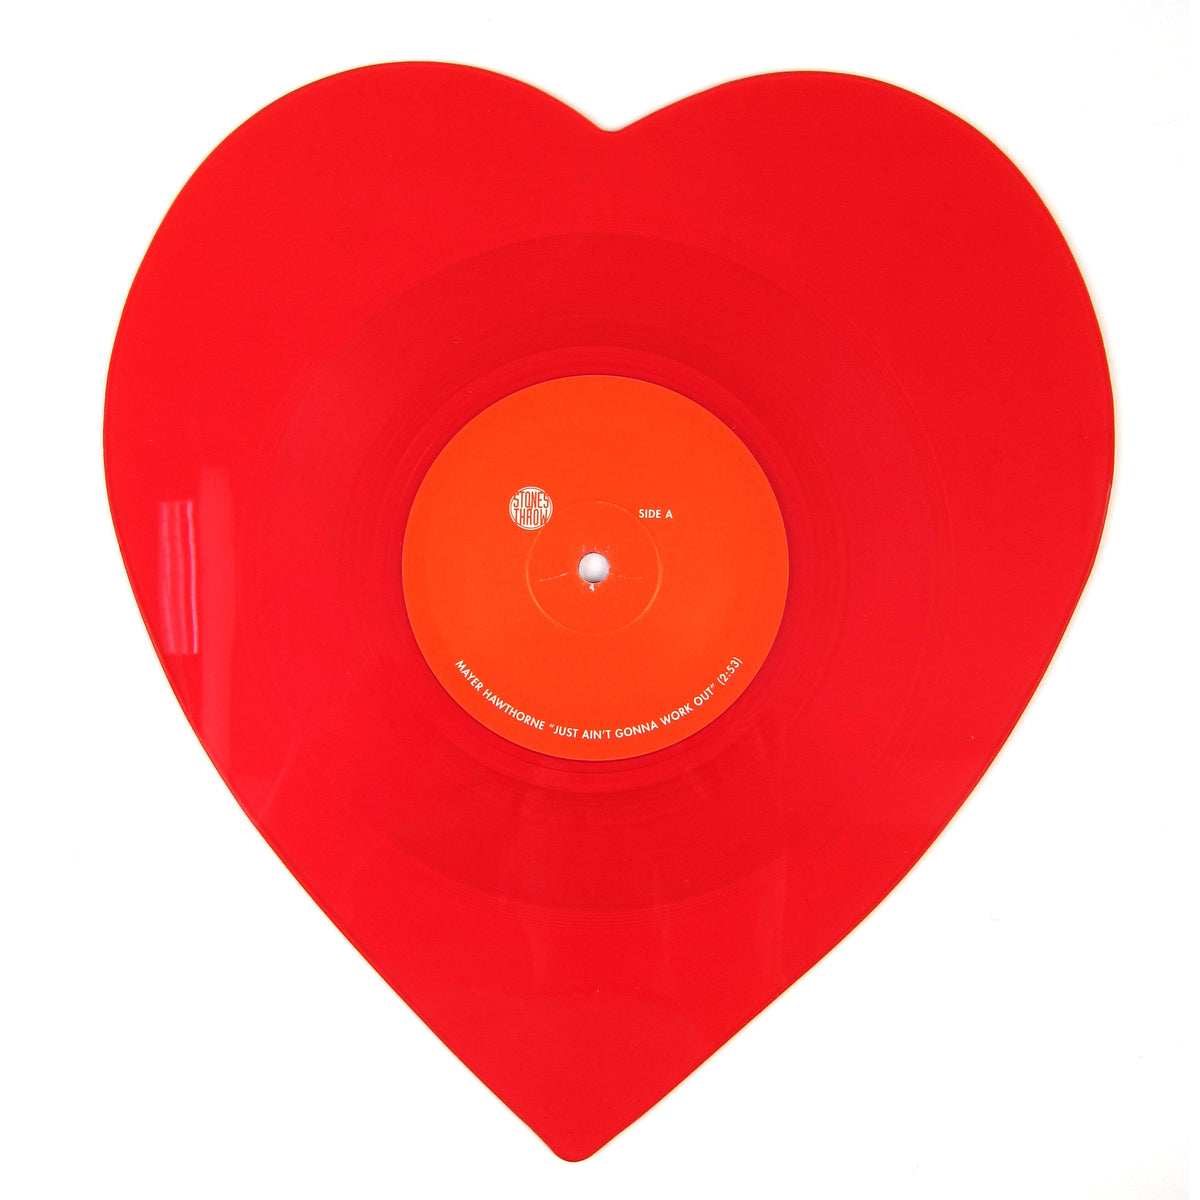 Mayer Hawthorne: Just Ain't Gonna Work Out (Heart Shaped Colored Vinyl) Vinyl 10""